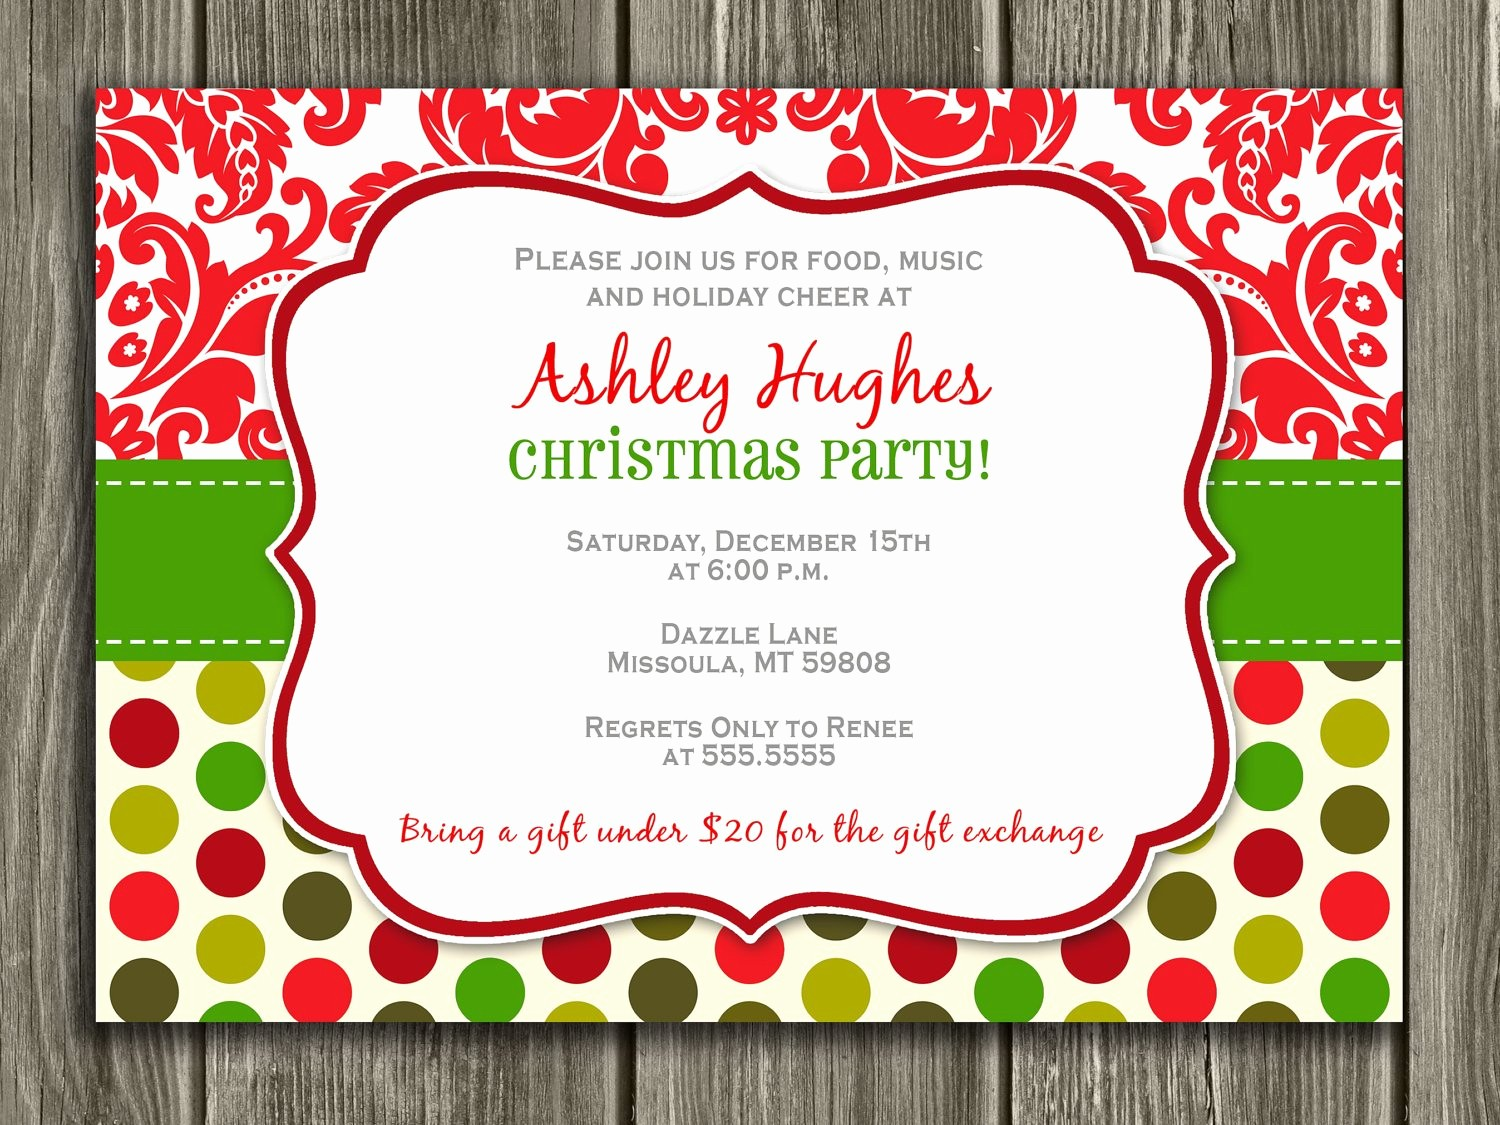 Free Online Christmas Party Invitations Awesome Free Printable Christmas Party Invitations Online